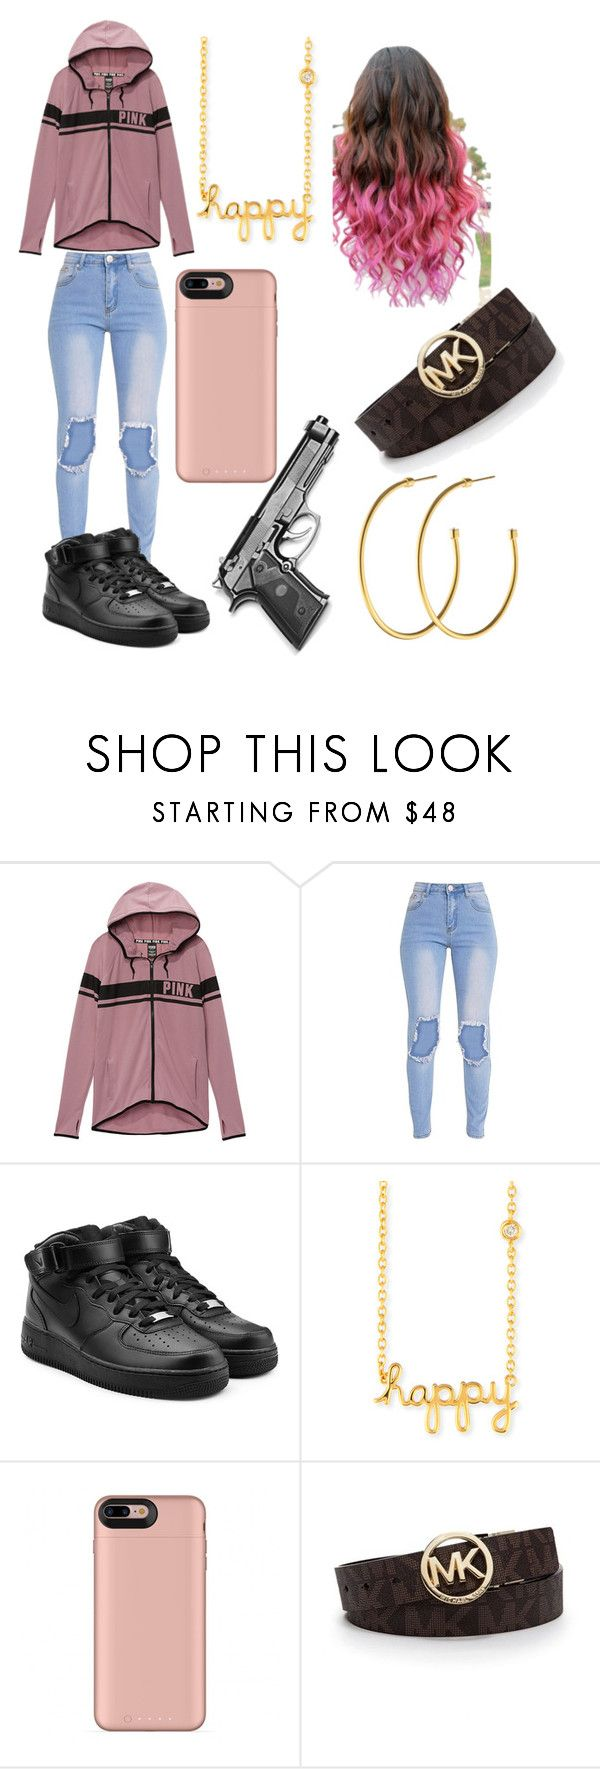 """Untitled #205"" by halo124 on Polyvore featuring Victoria's Secret, NIKE, Sydney Evan, Michael Kors and Dyrberg/Kern"